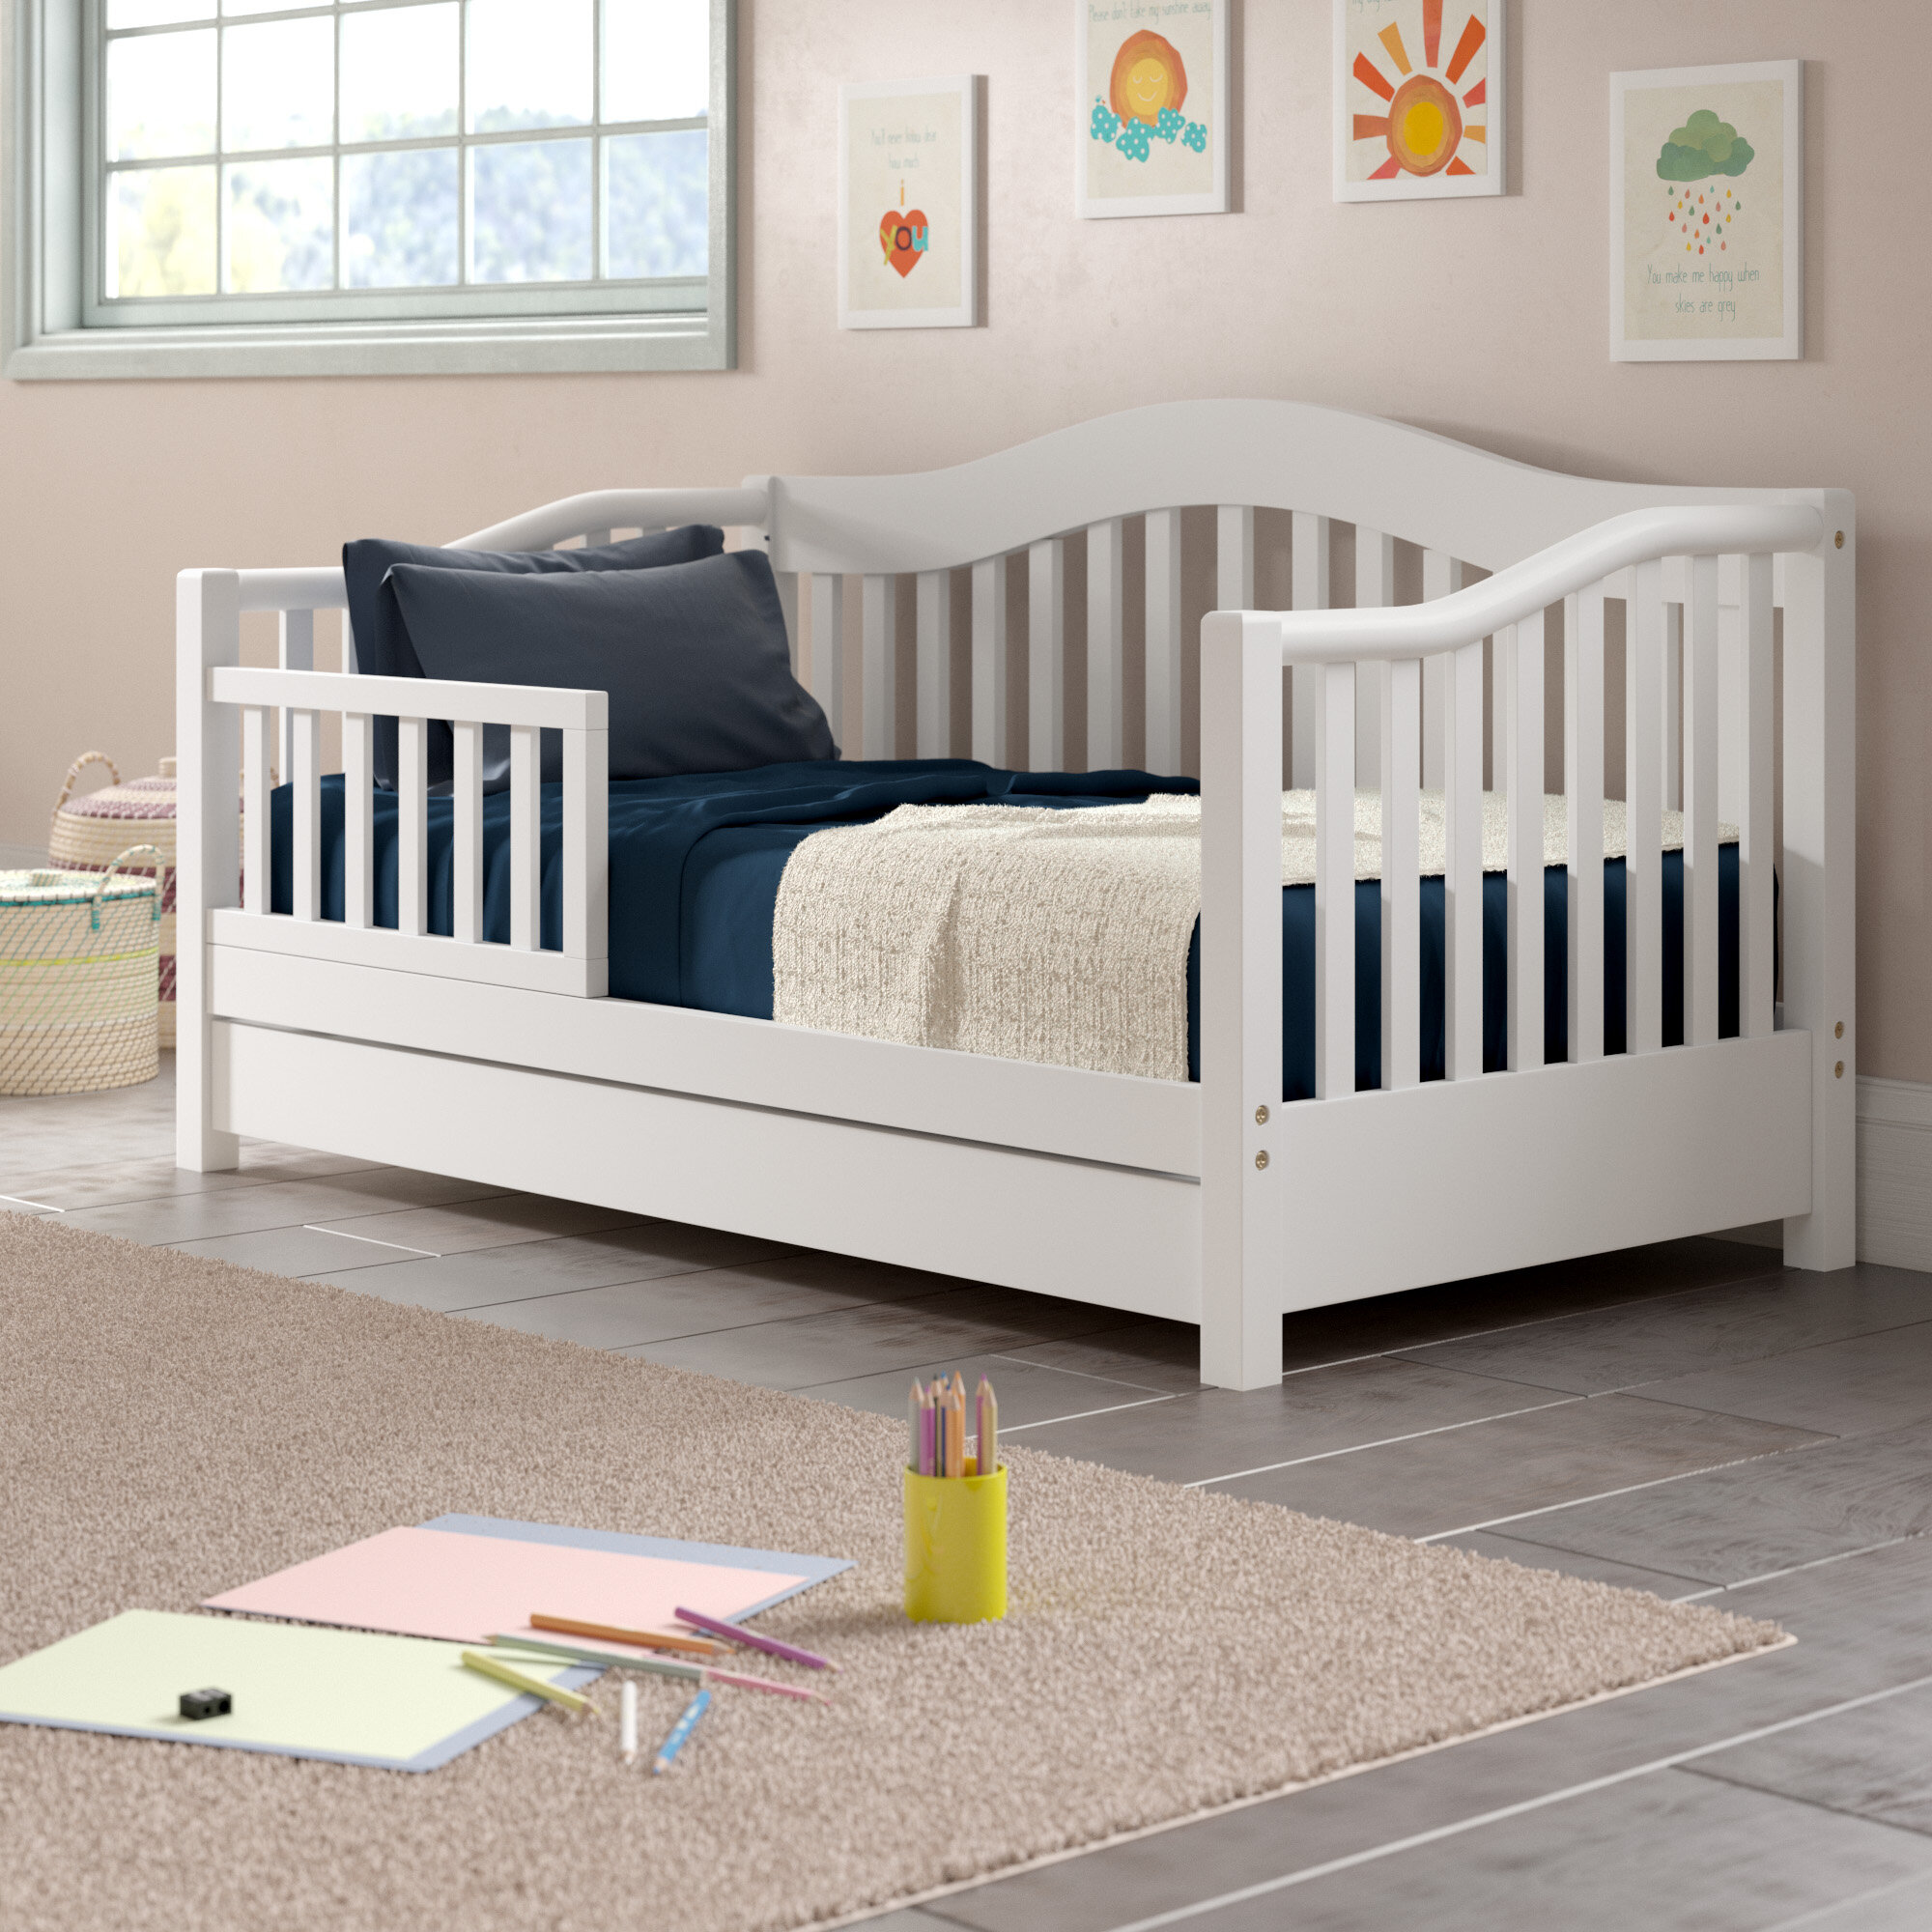 Clarkson Toddler Bed With Storage